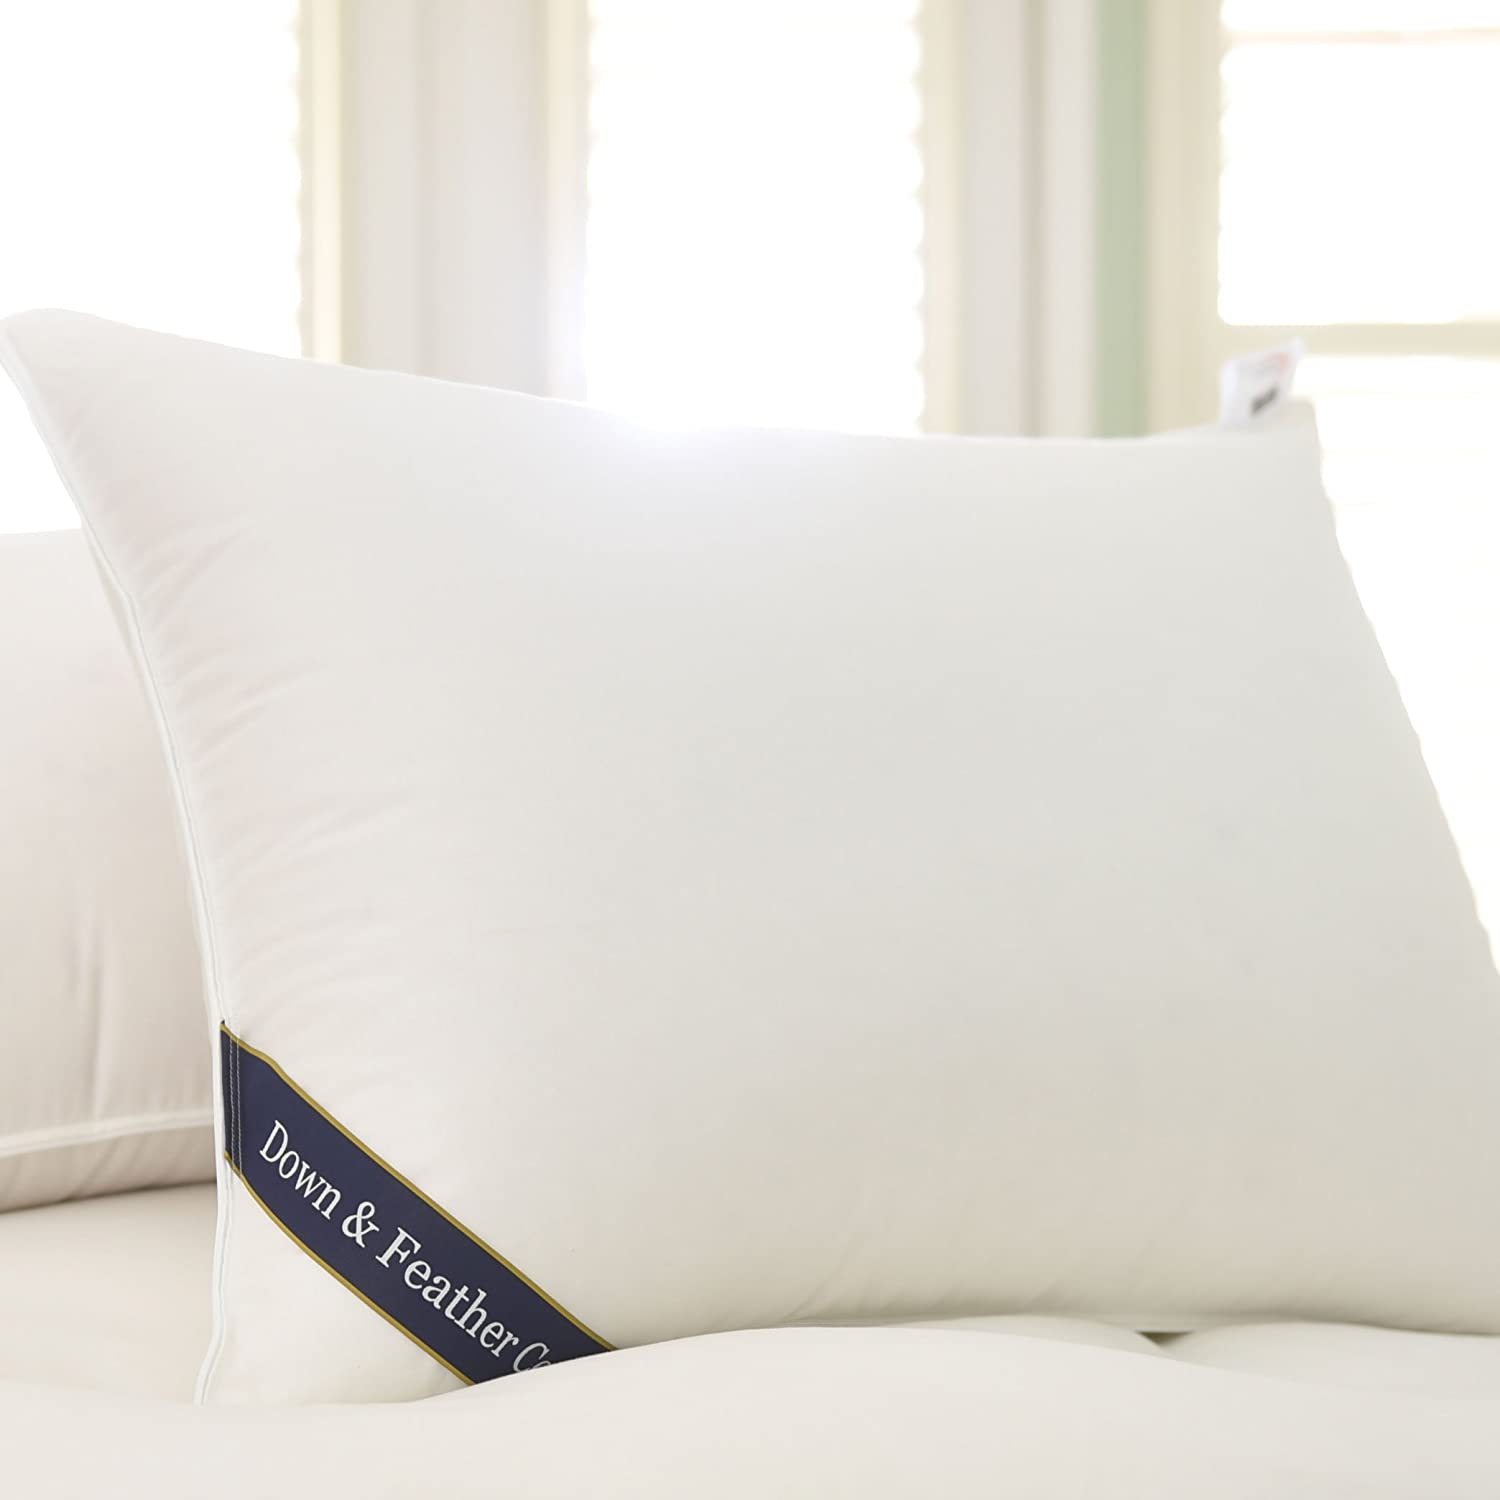 Snuggle Soft 600 - Goose Down Pillow